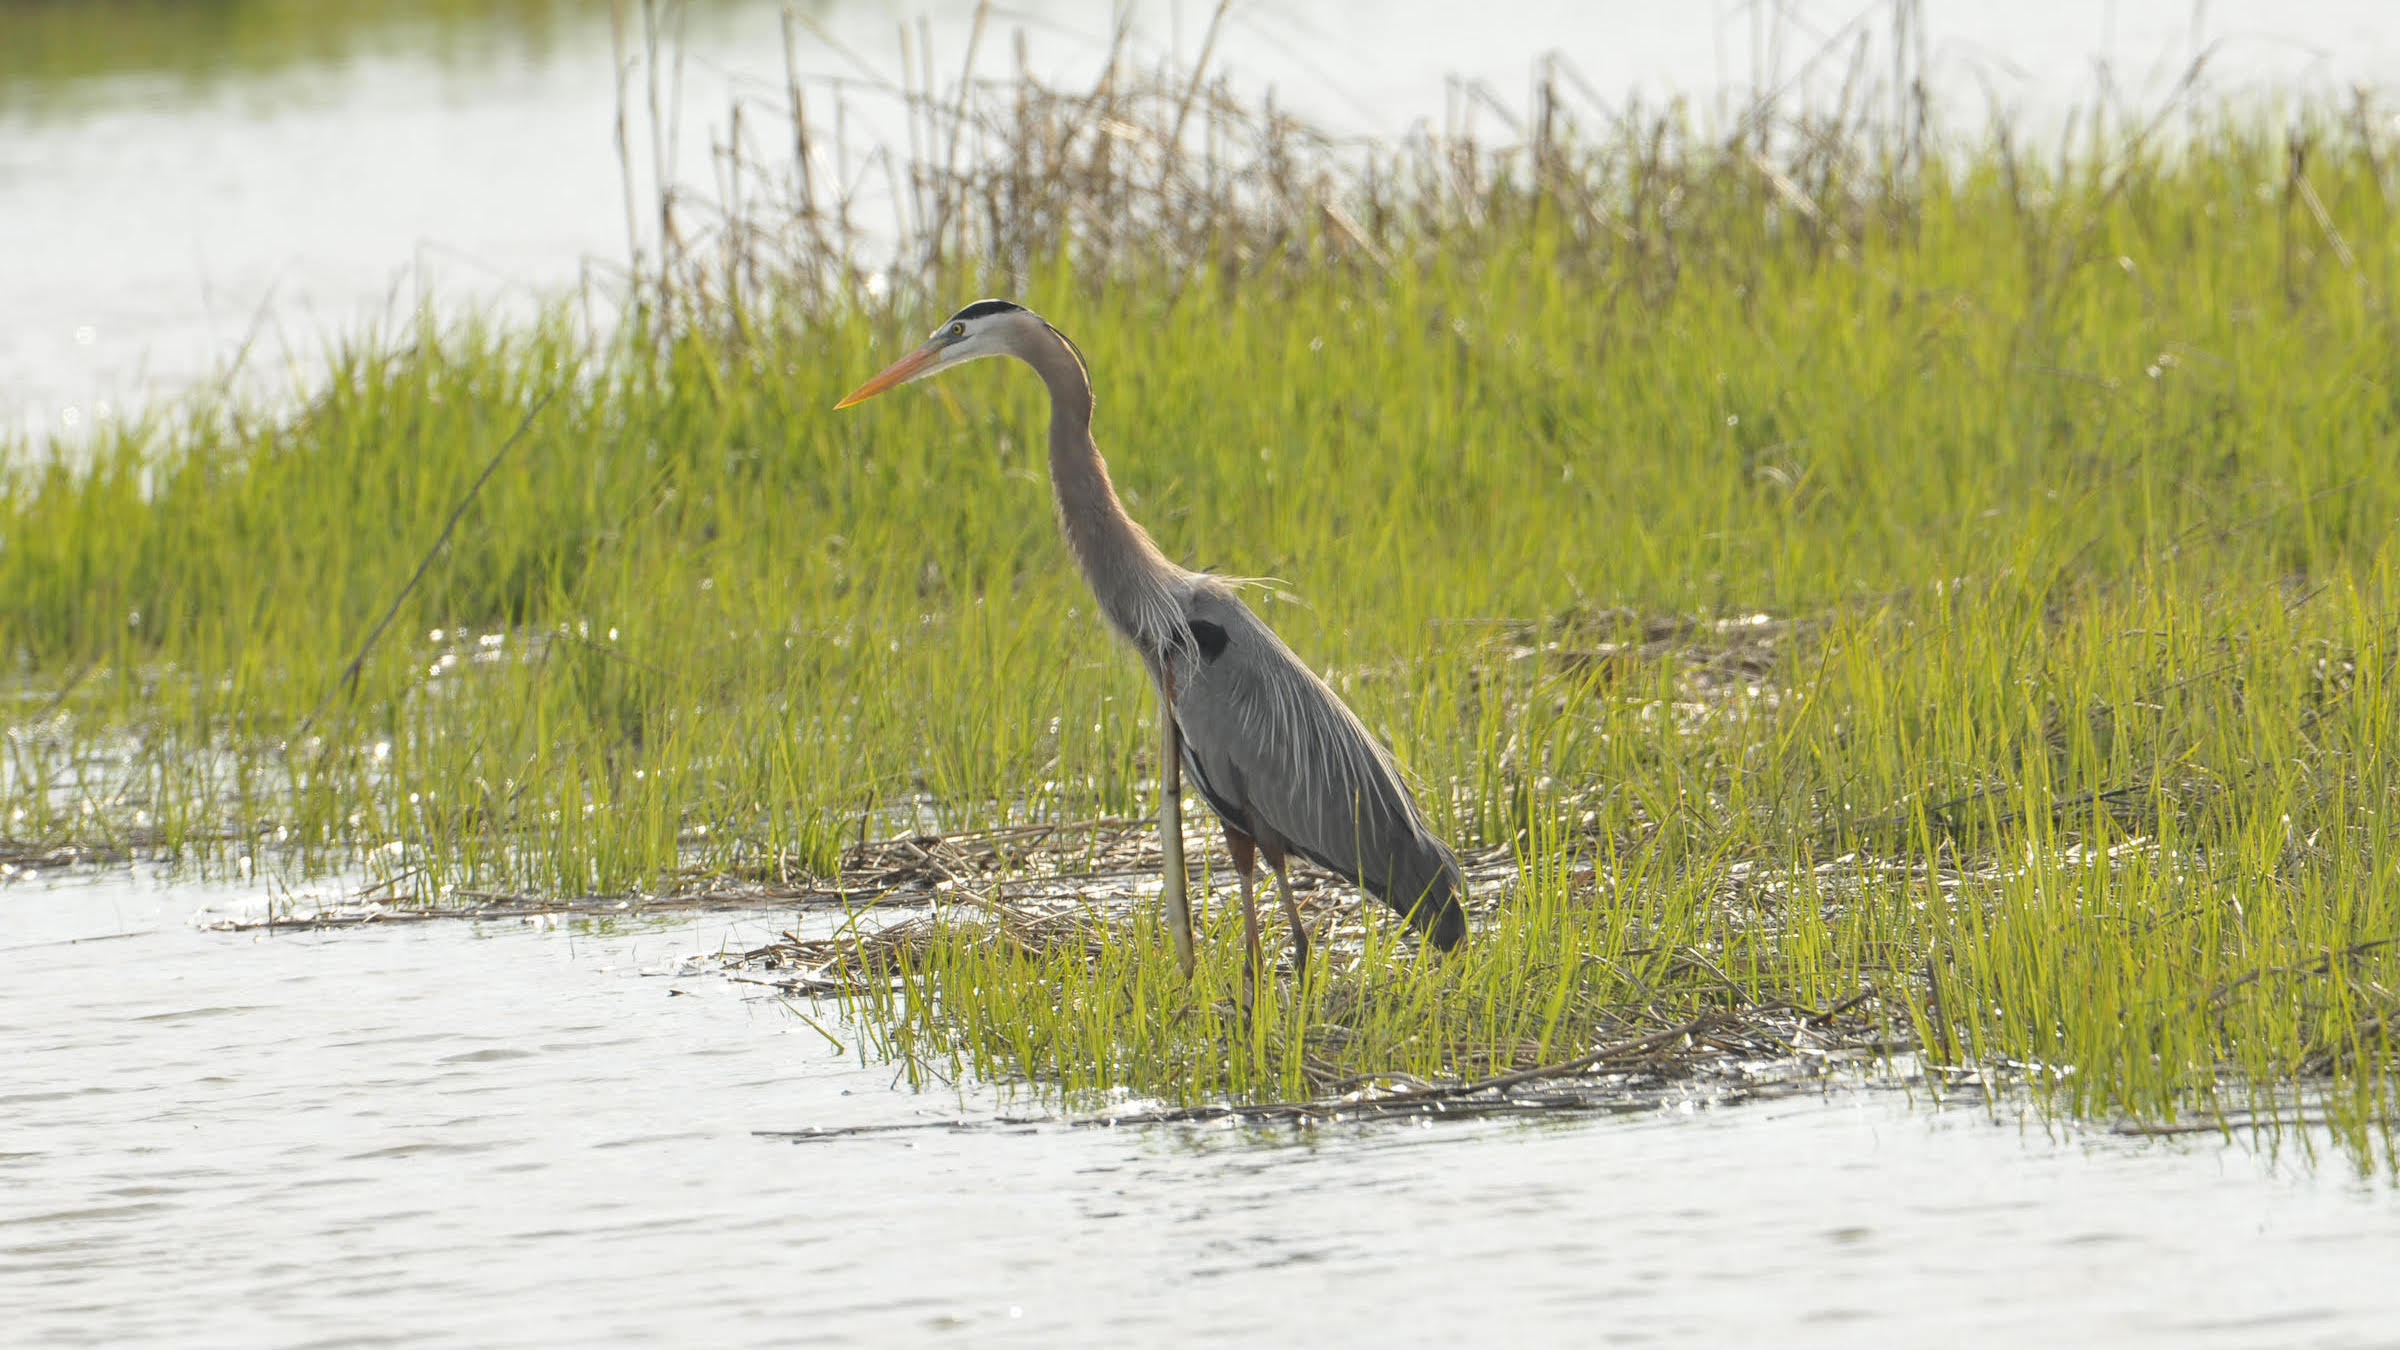 The snake eels limply dangles from the heron.